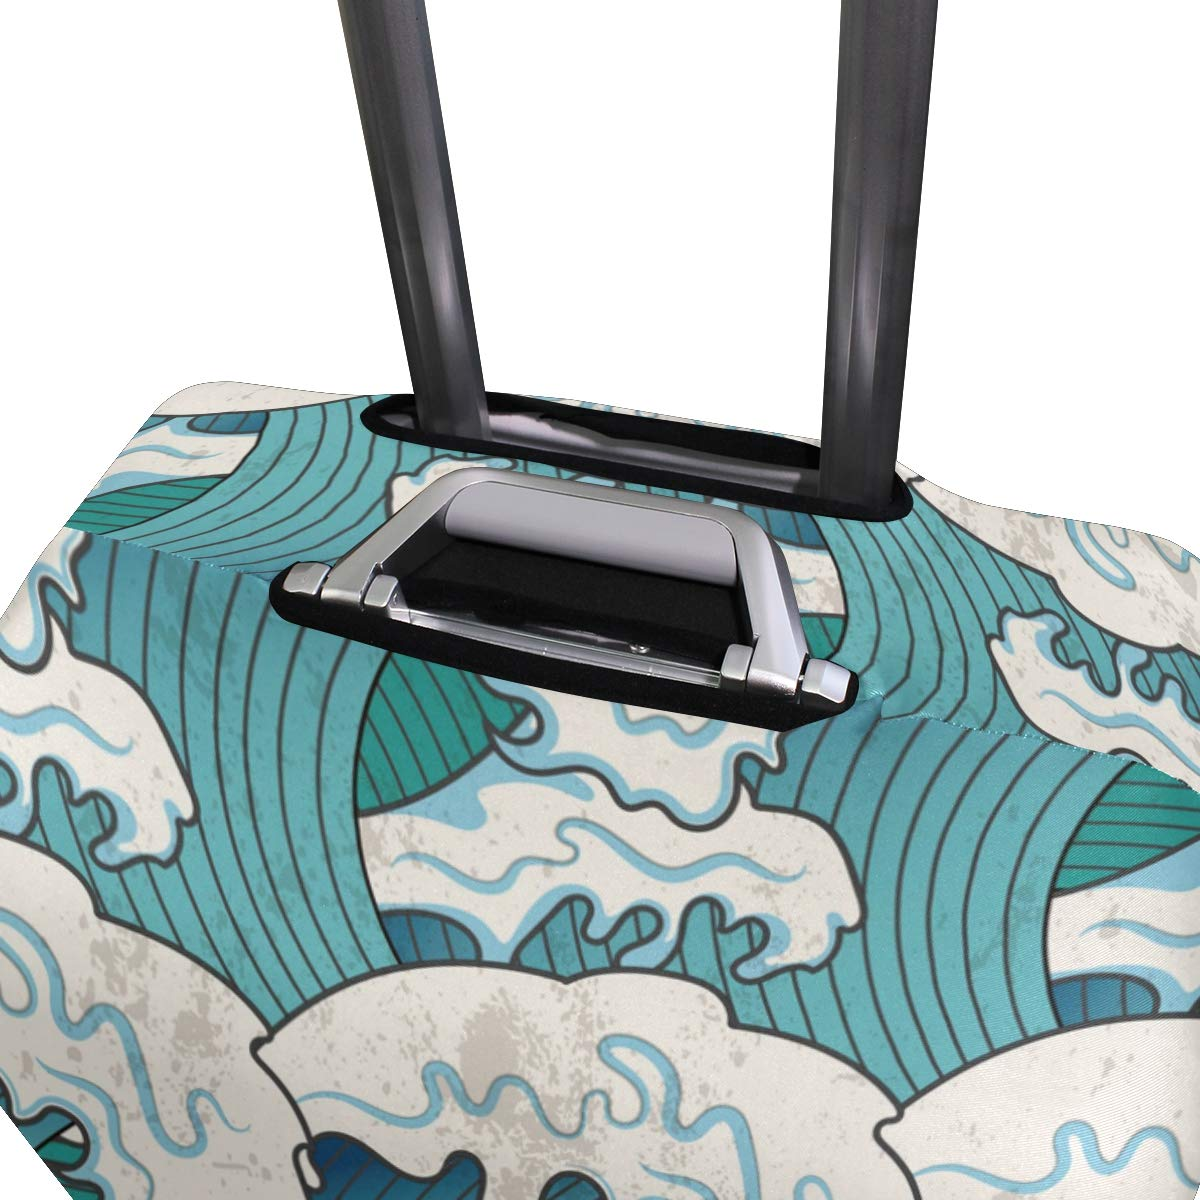 Baggage Covers Japanese Sea Waves Blue Ocean Washable Protective Case